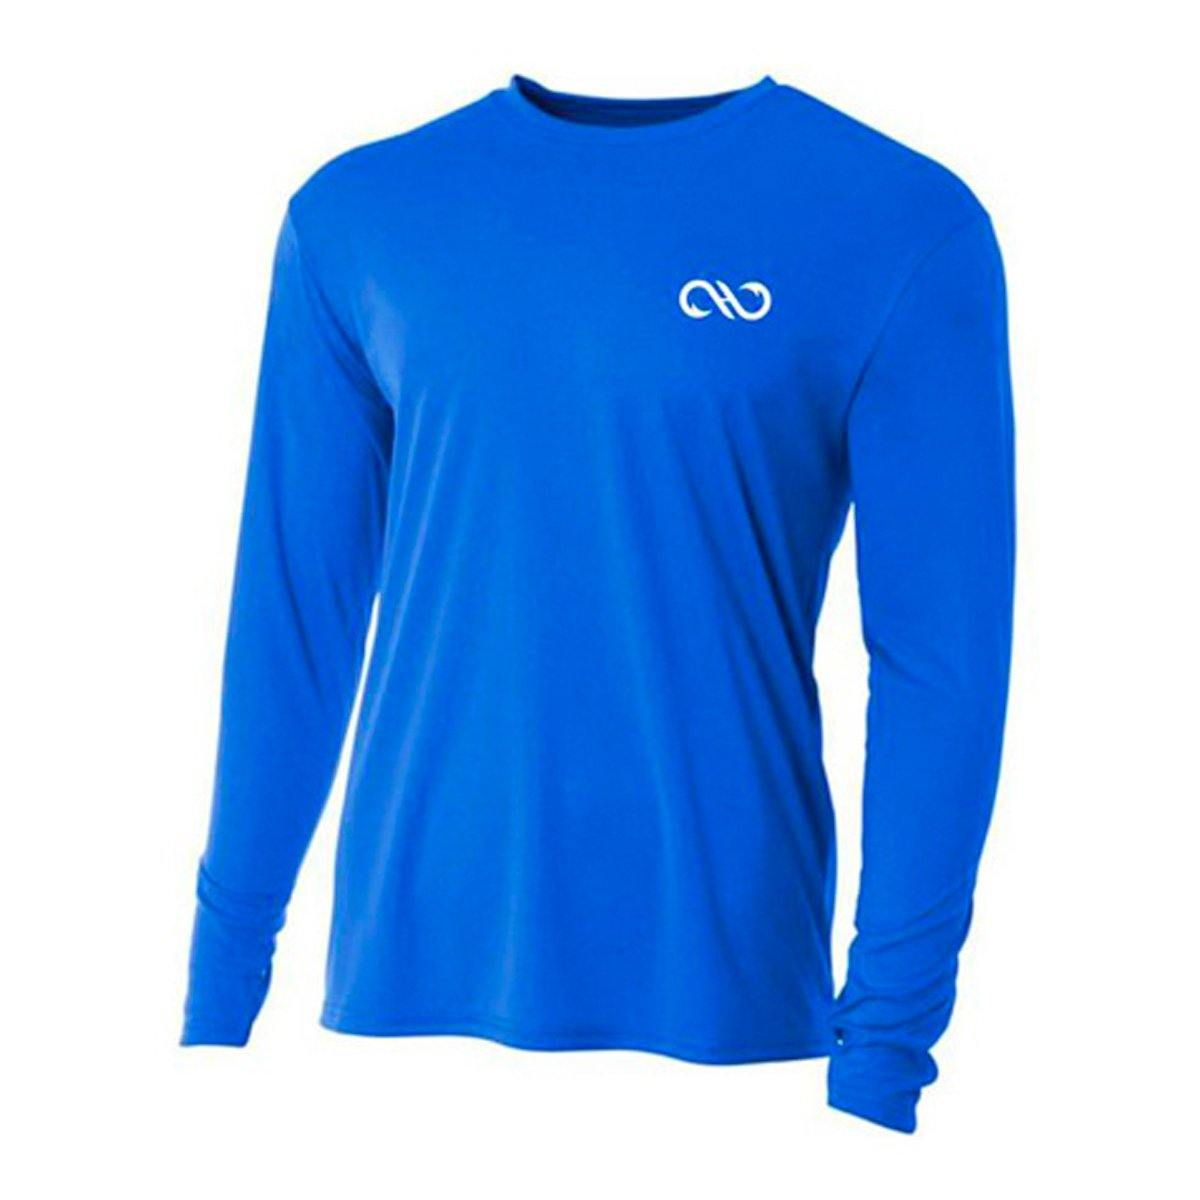 Signature Performance Shirt (4347886764104)